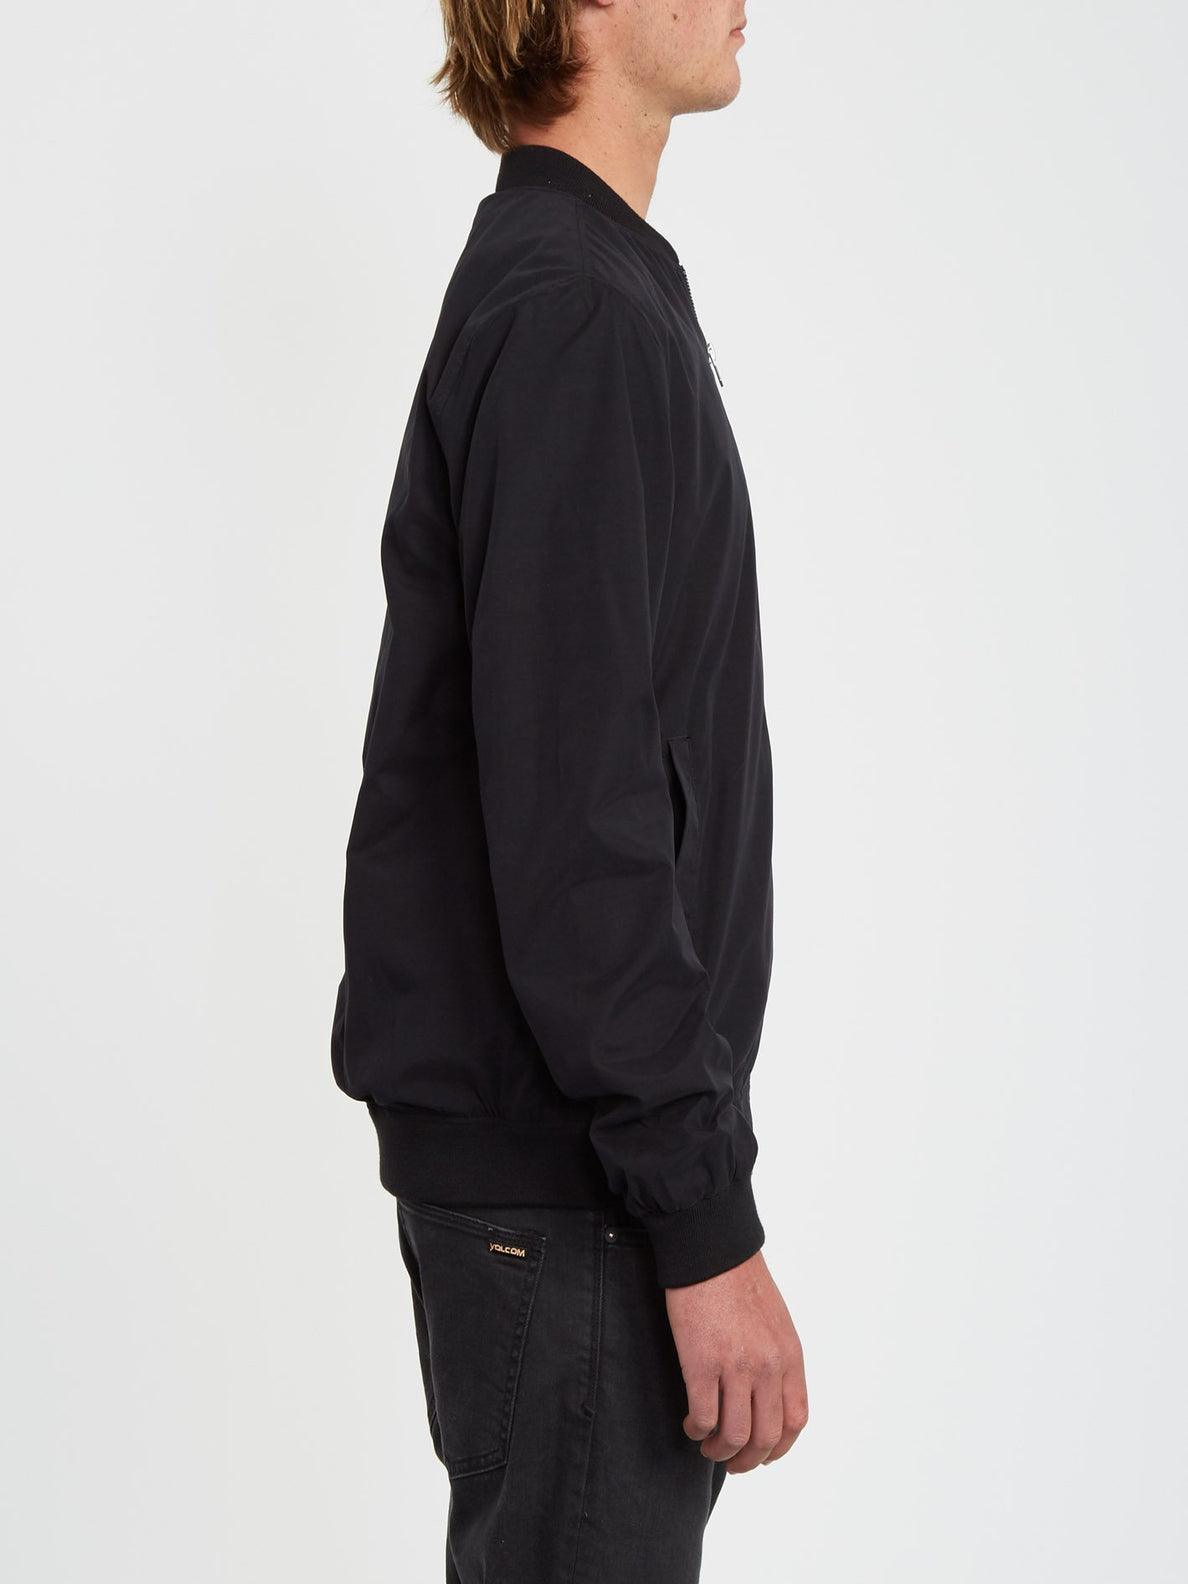 Burnward Jacket - Black Combo